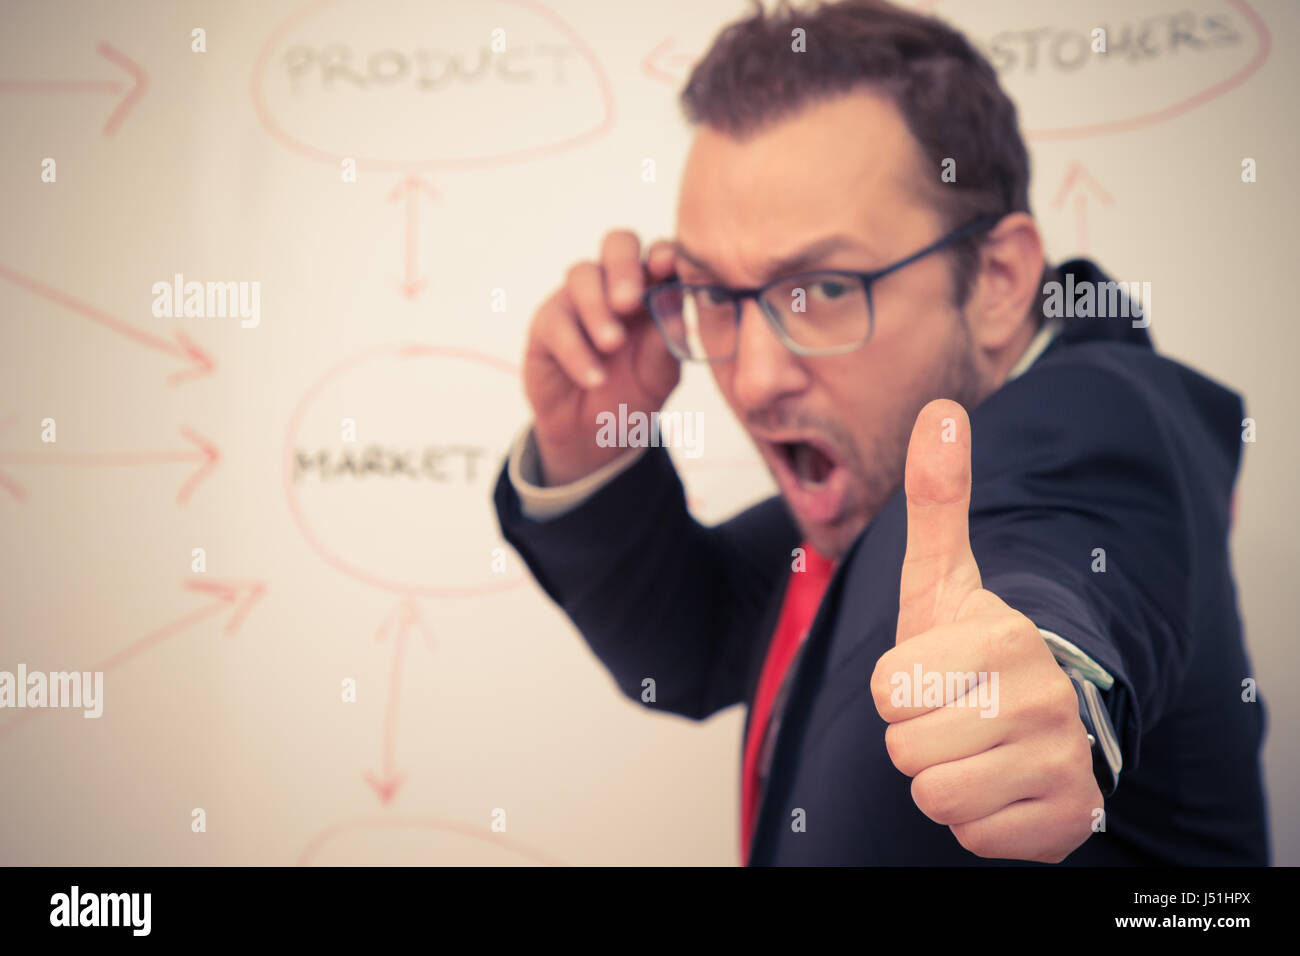 Businessman showing ok sigh with his thumb. Stock Photo